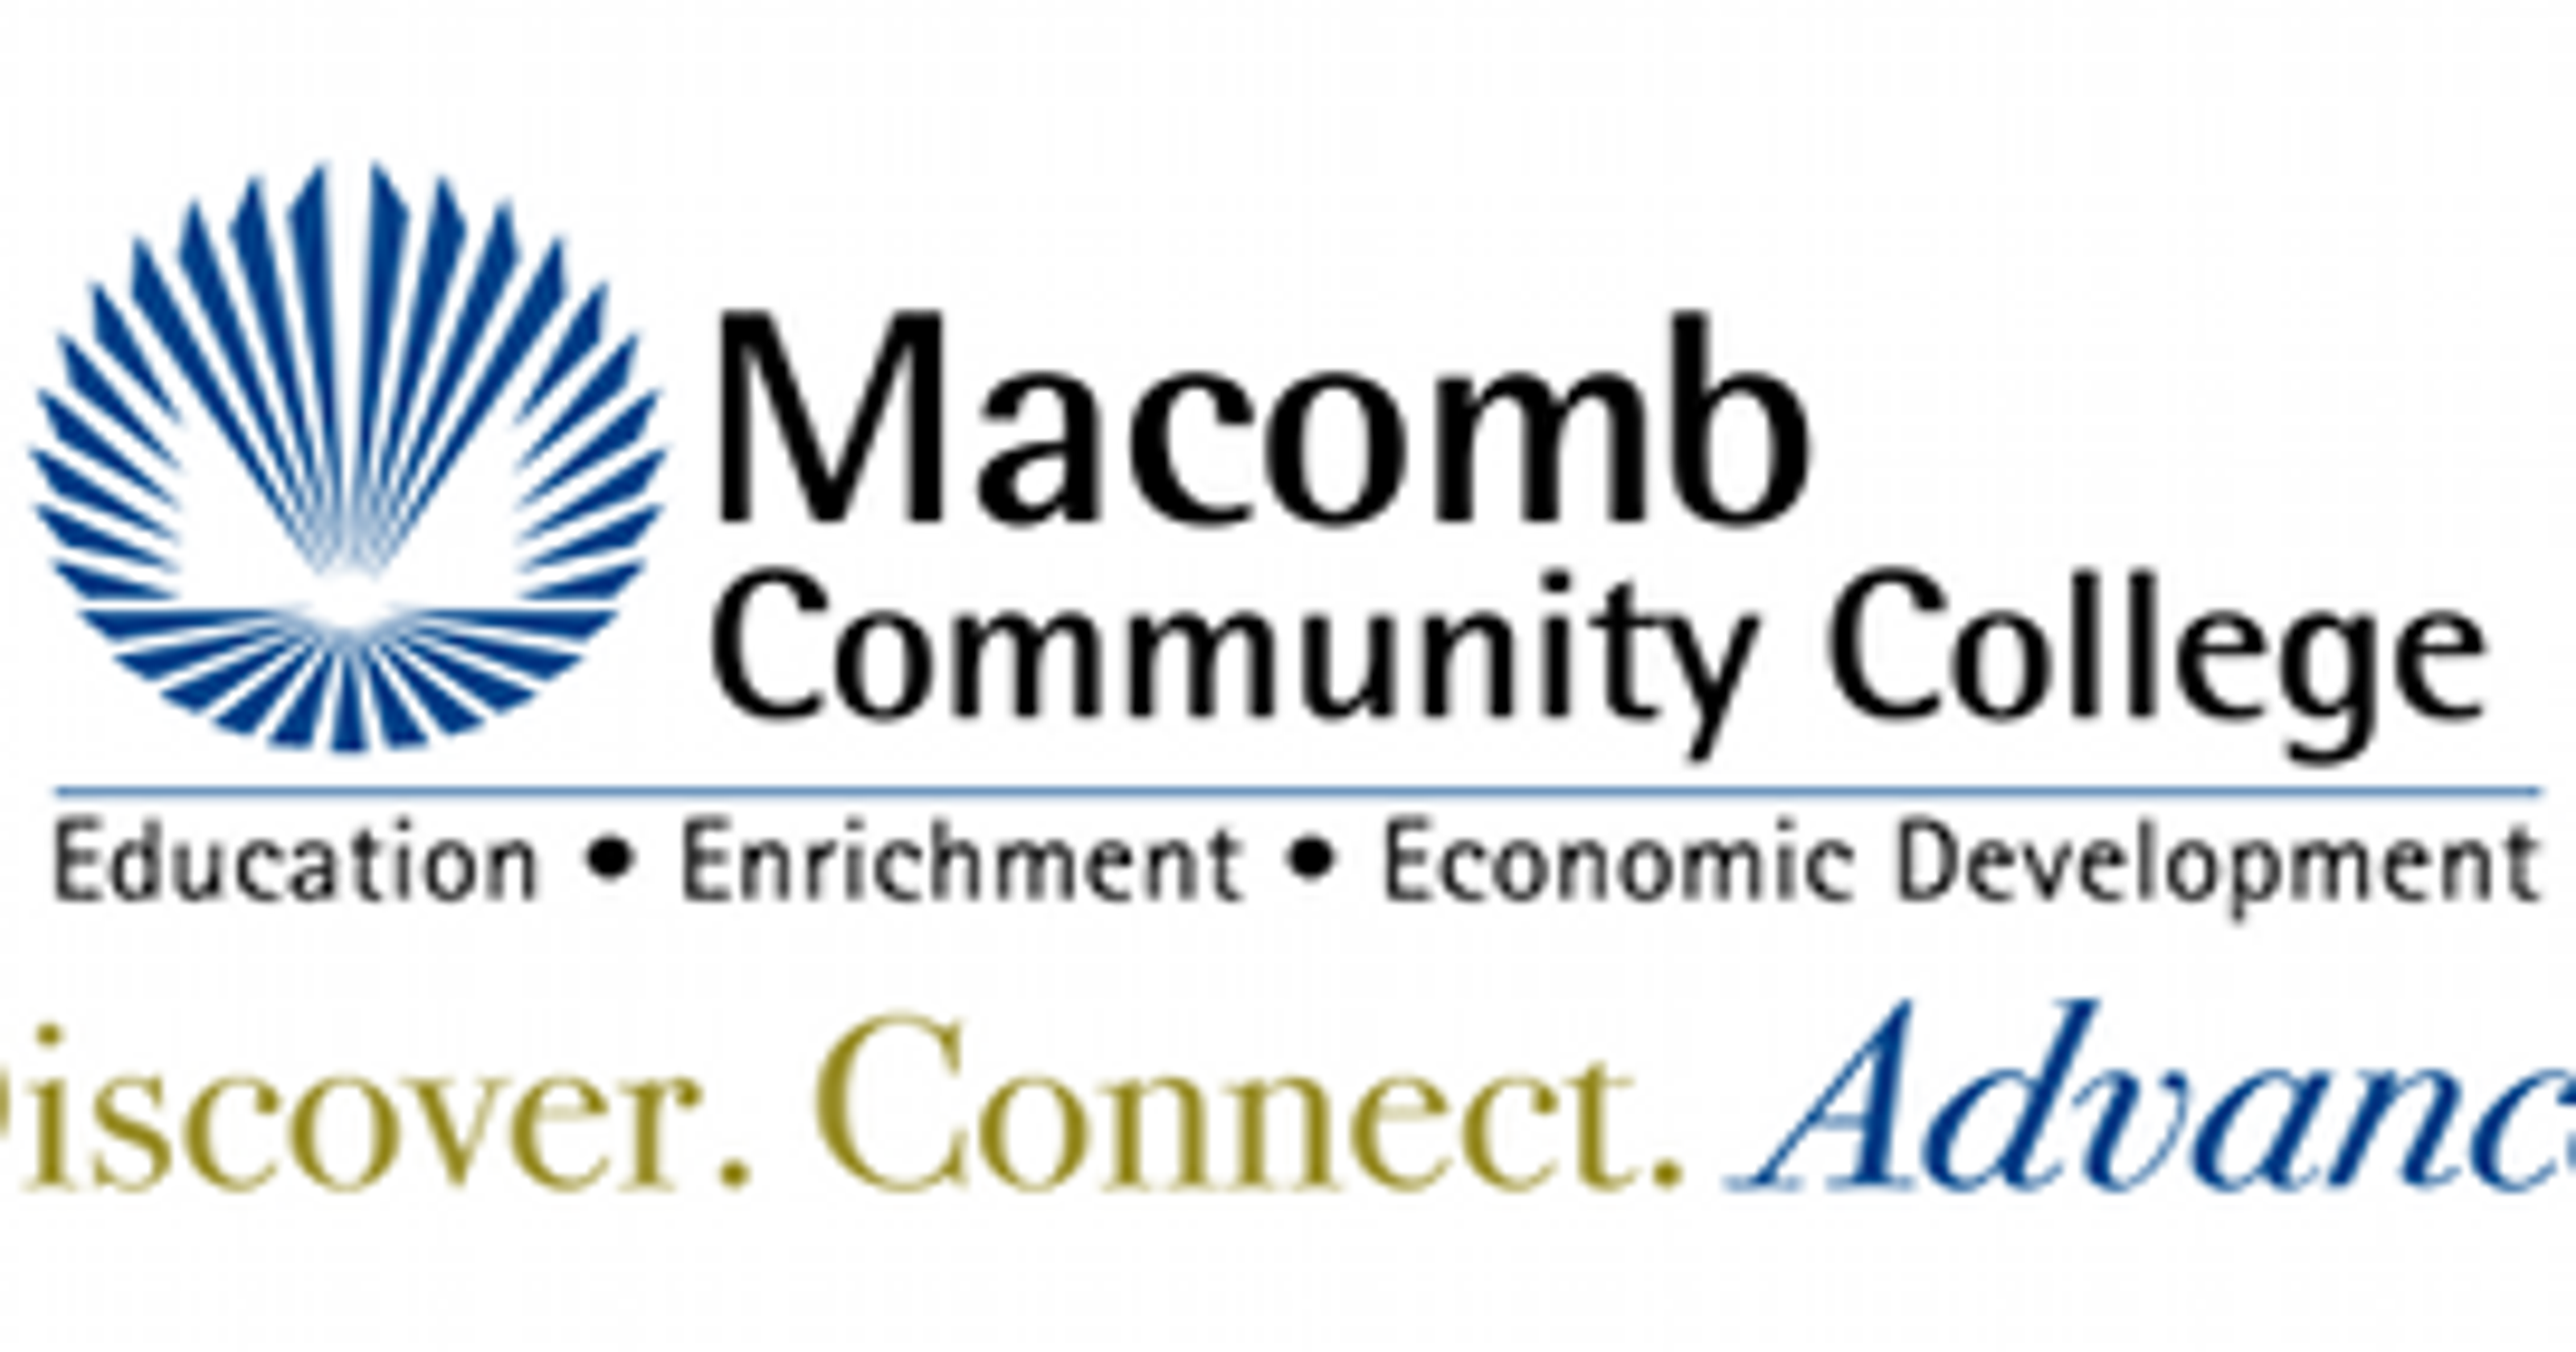 Power outage cancels cles at Macomb Community College on pierce college fort steilacoom campus map, walsh college campus map, eastern wyoming college campus map, macomb county community college map, baker college of owosso campus map, kaskaskia college campus map, st petersburg college campus map, waukesha county technical college campus map, college of southern nevada campus map, baker college of flint campus map, college of southern maryland campus map, atlanta technical college campus map, jefferson college campus map, crowder college campus map, wayne campus map, college of lake county campus map, olivet college campus map, baker college of auburn hills campus map, georgia perimeter college campus map, milwaukee area technical college campus map,